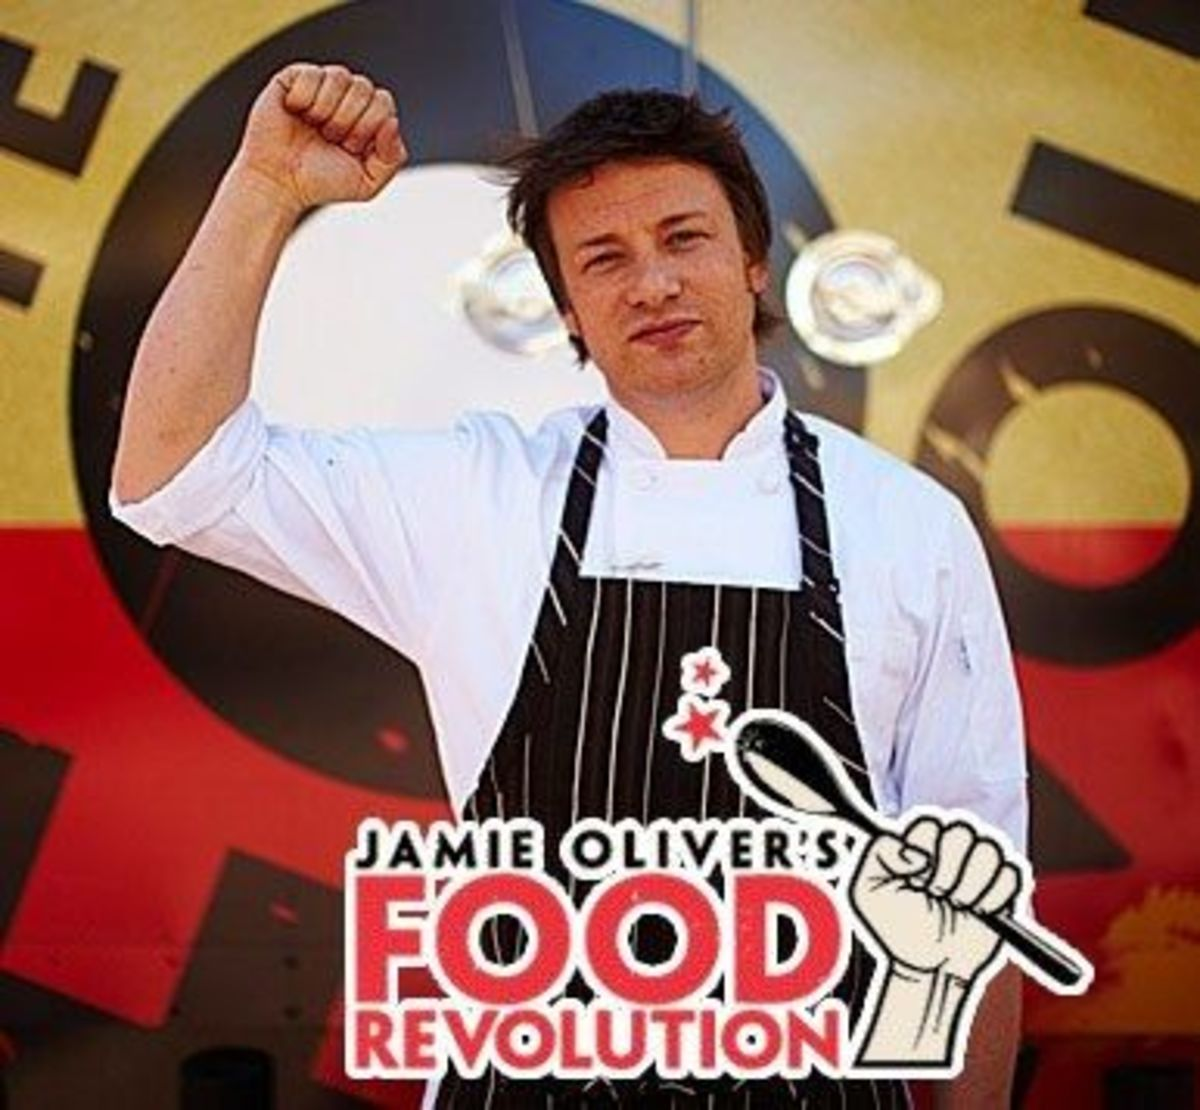 Jamie Oliver's pressure results in flavored milk ban in LA schools